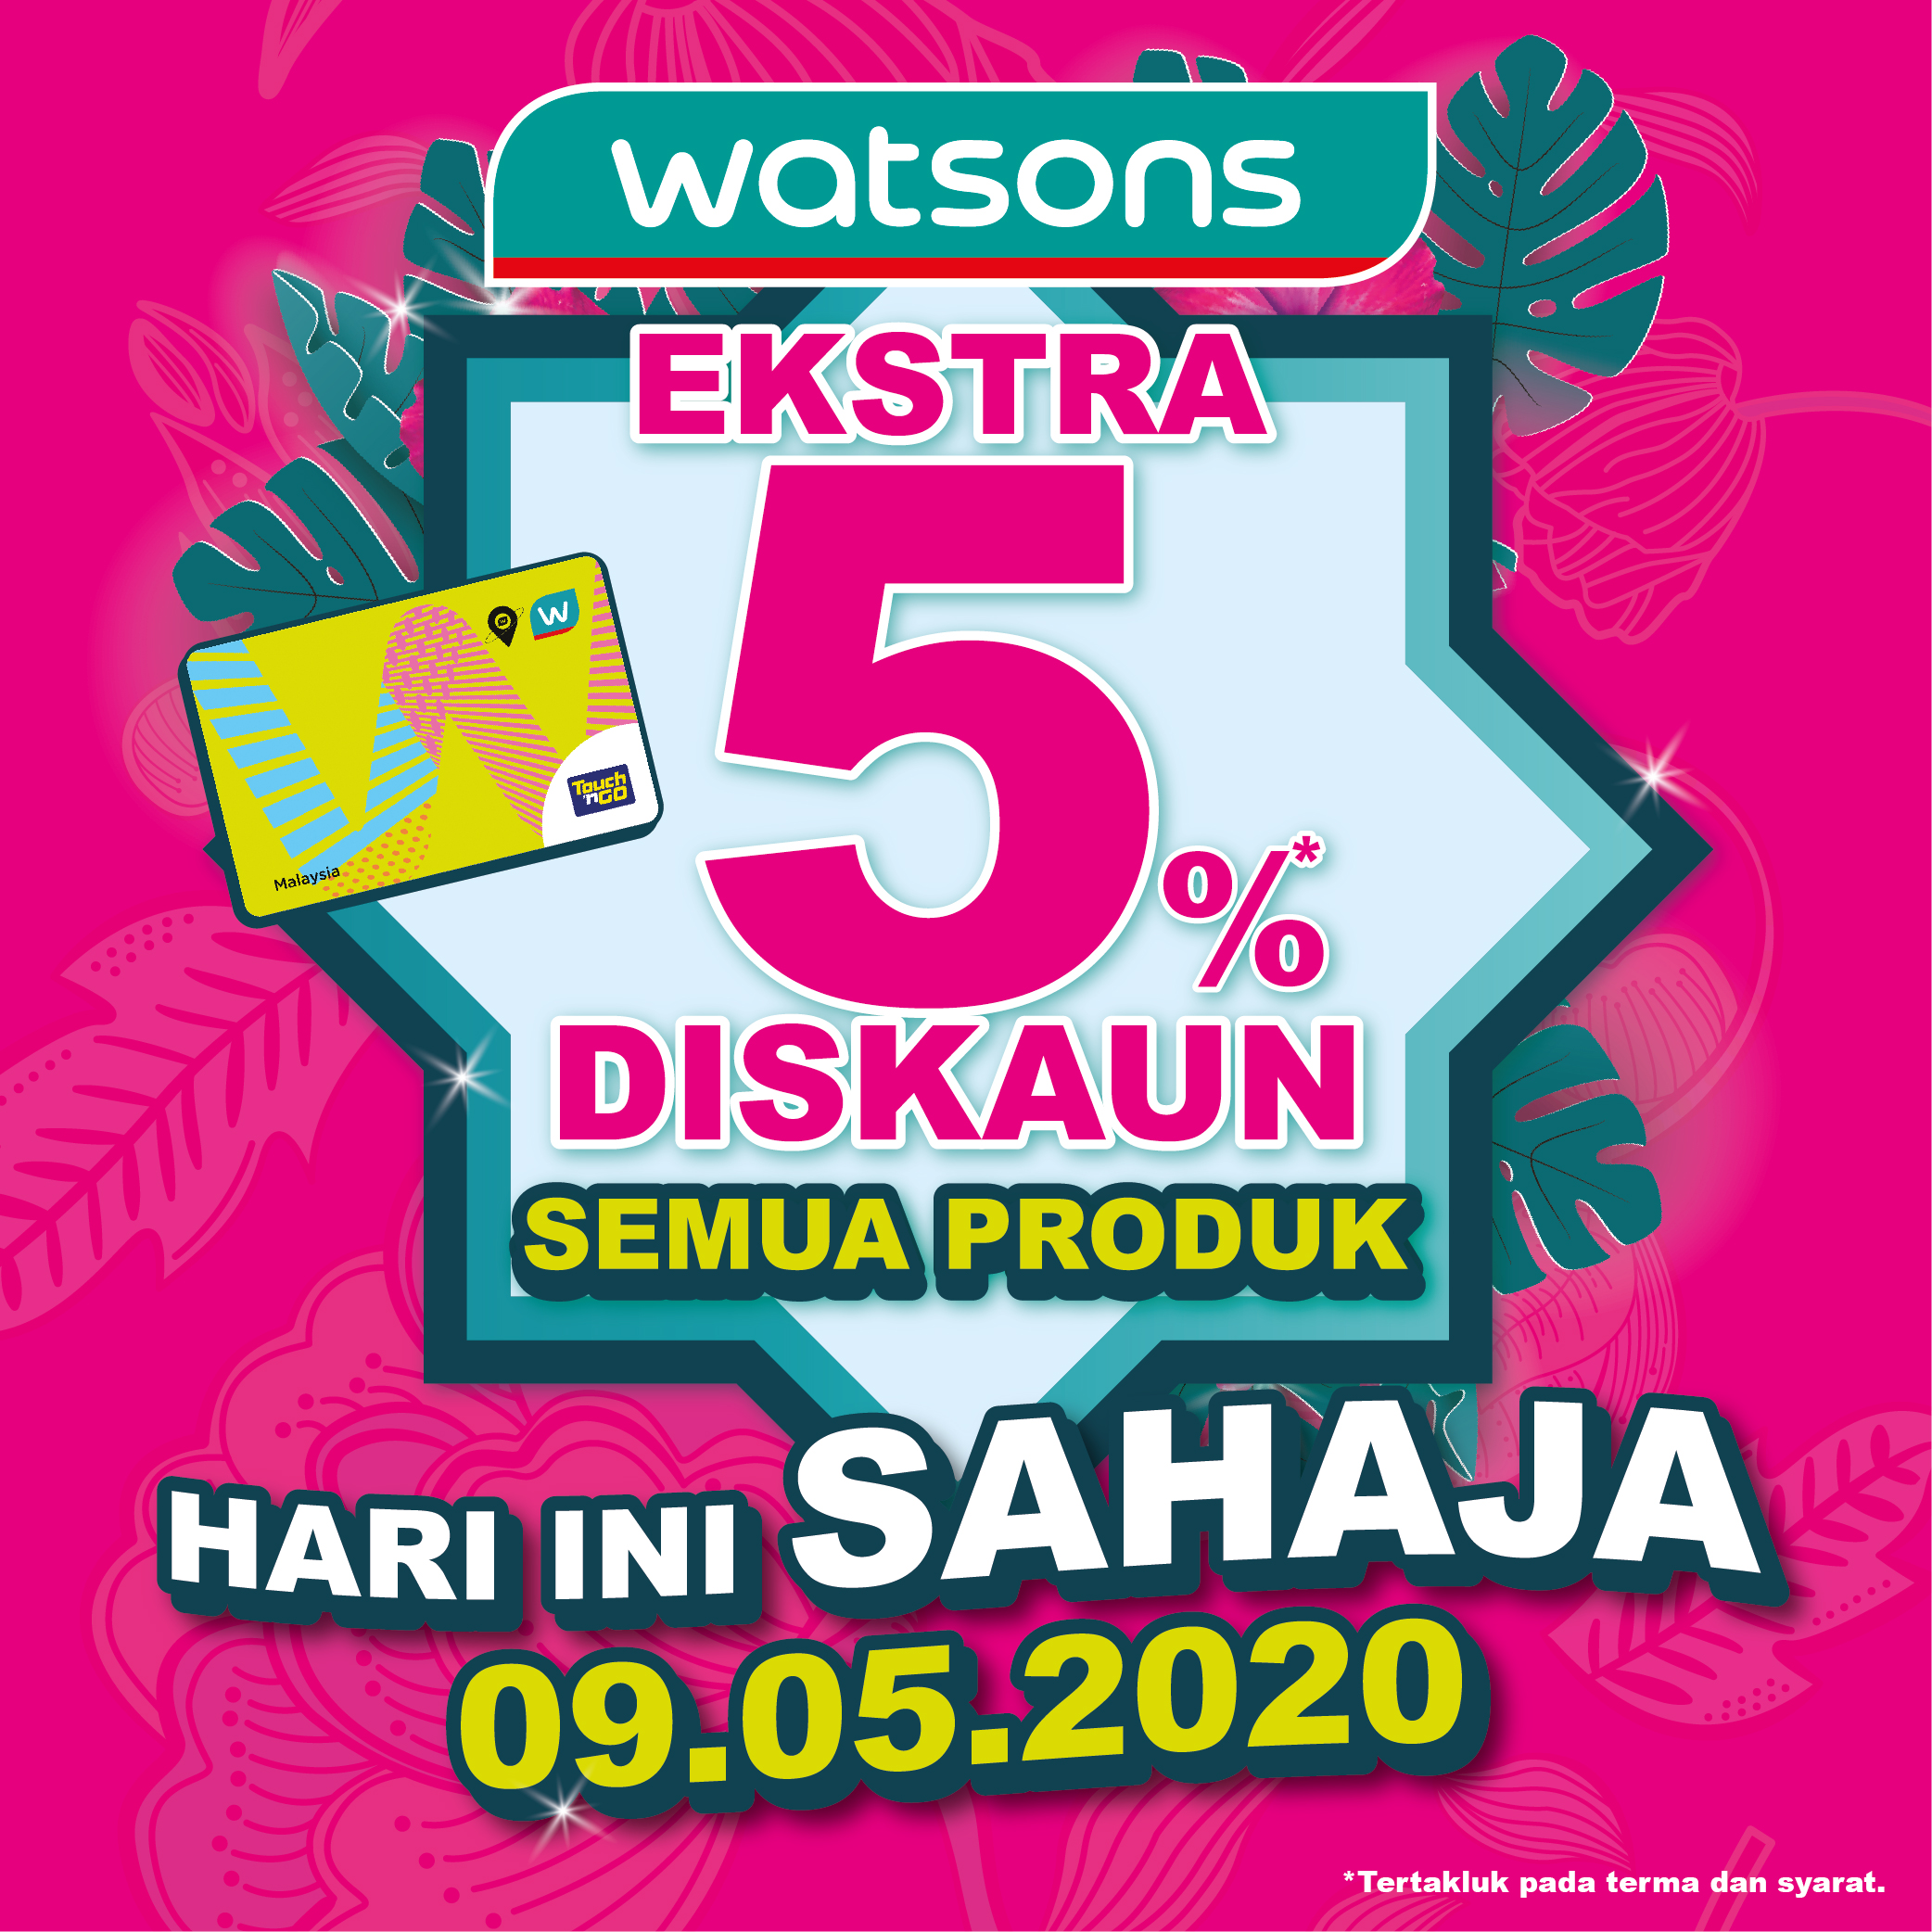 Watsons: One Day Exclusive